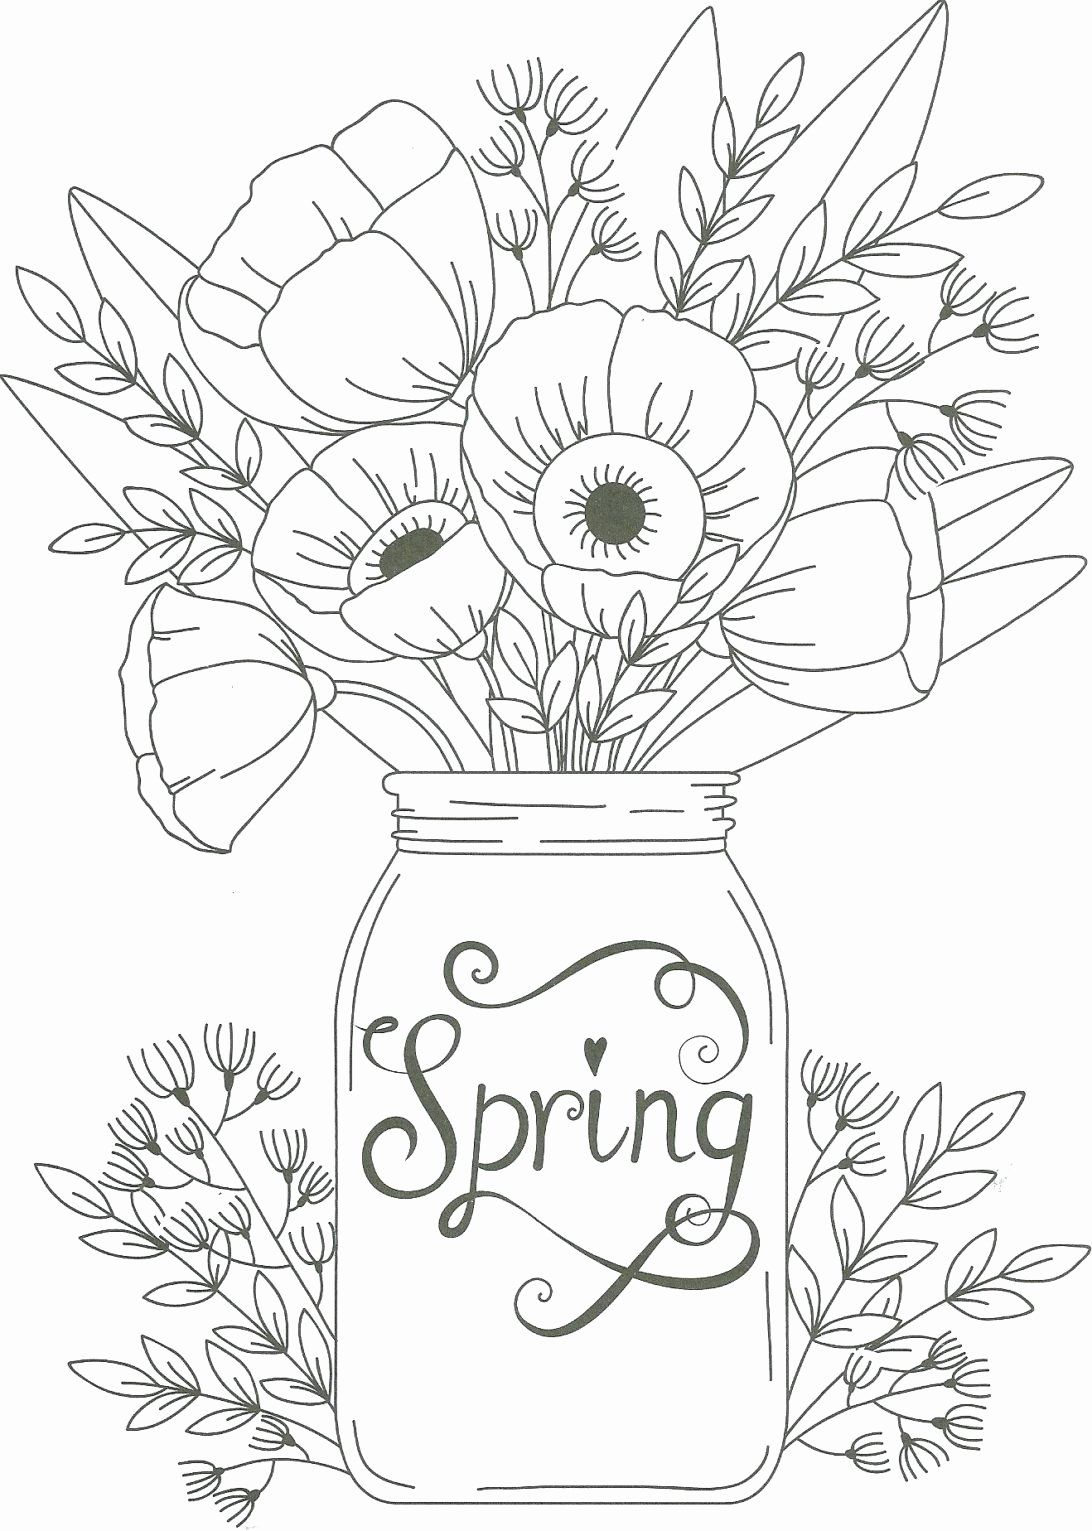 Coloring Book Flower Pdf Inspirational Flowers Coloring Book Pdf Best Books Pages Spring Coloring Pages Flower Coloring Sheets Printable Flower Coloring Pages